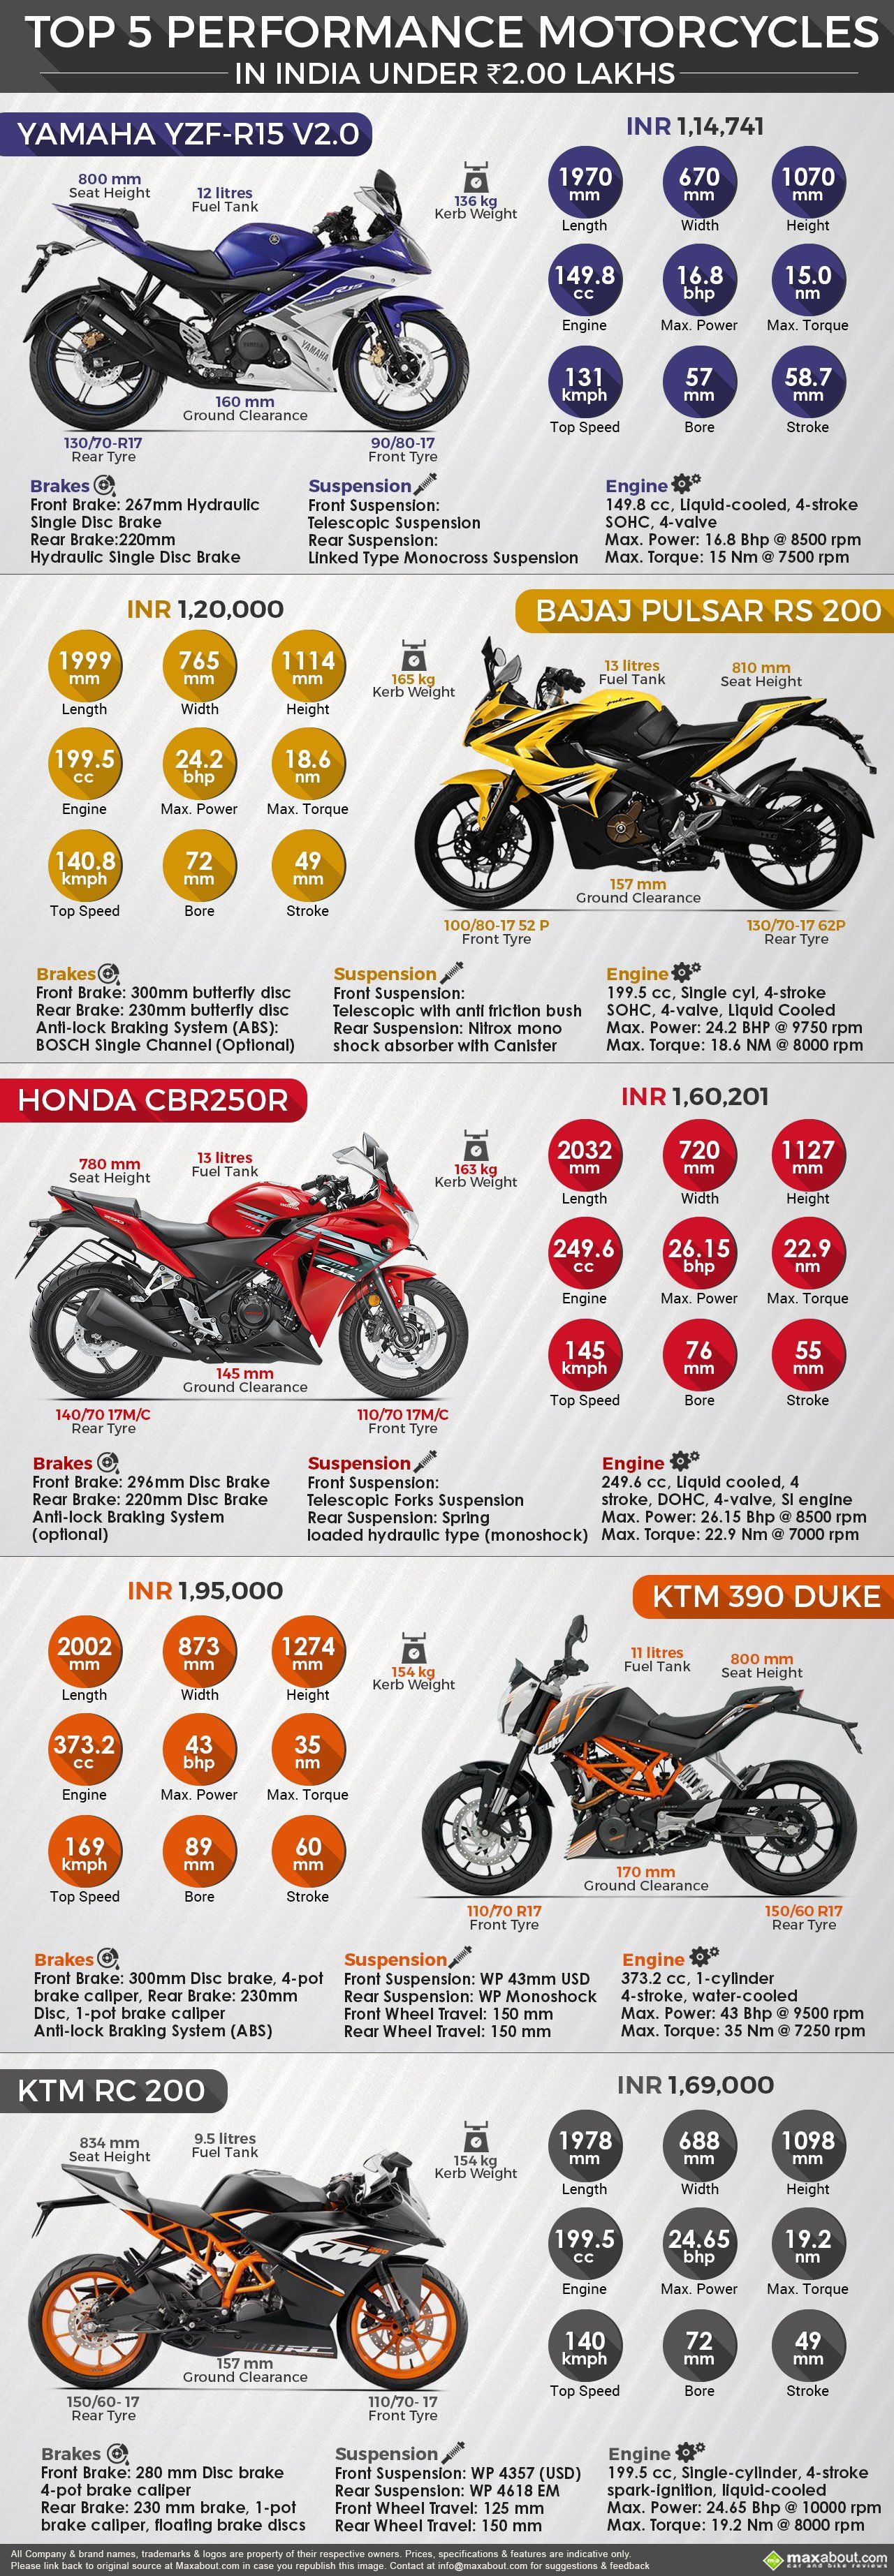 Top 5 Performance Motorcycles In India Under Inr 2 Lakh With